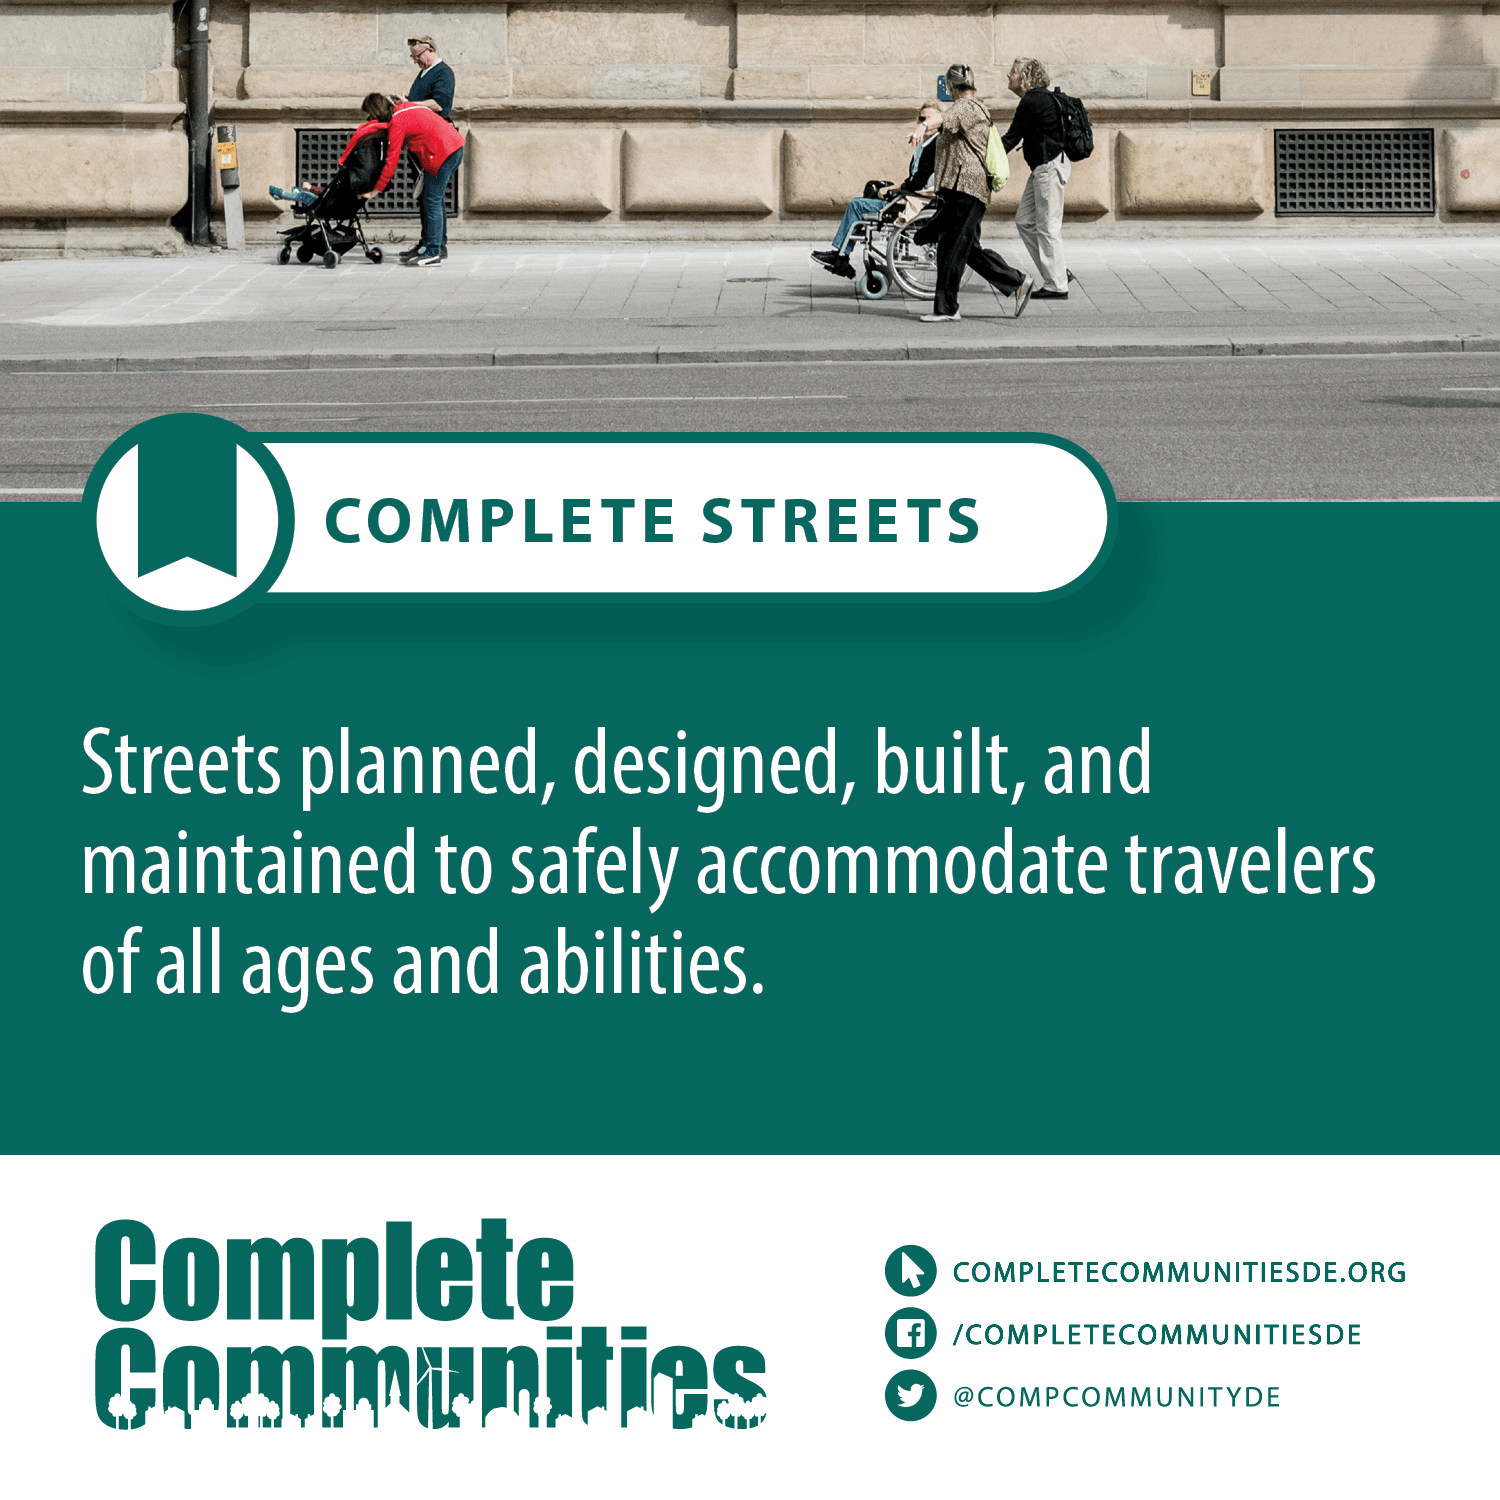 Complete streets: Streets planned, designed, built, and maintained to safely accommodate travelers of all ages and abilities.